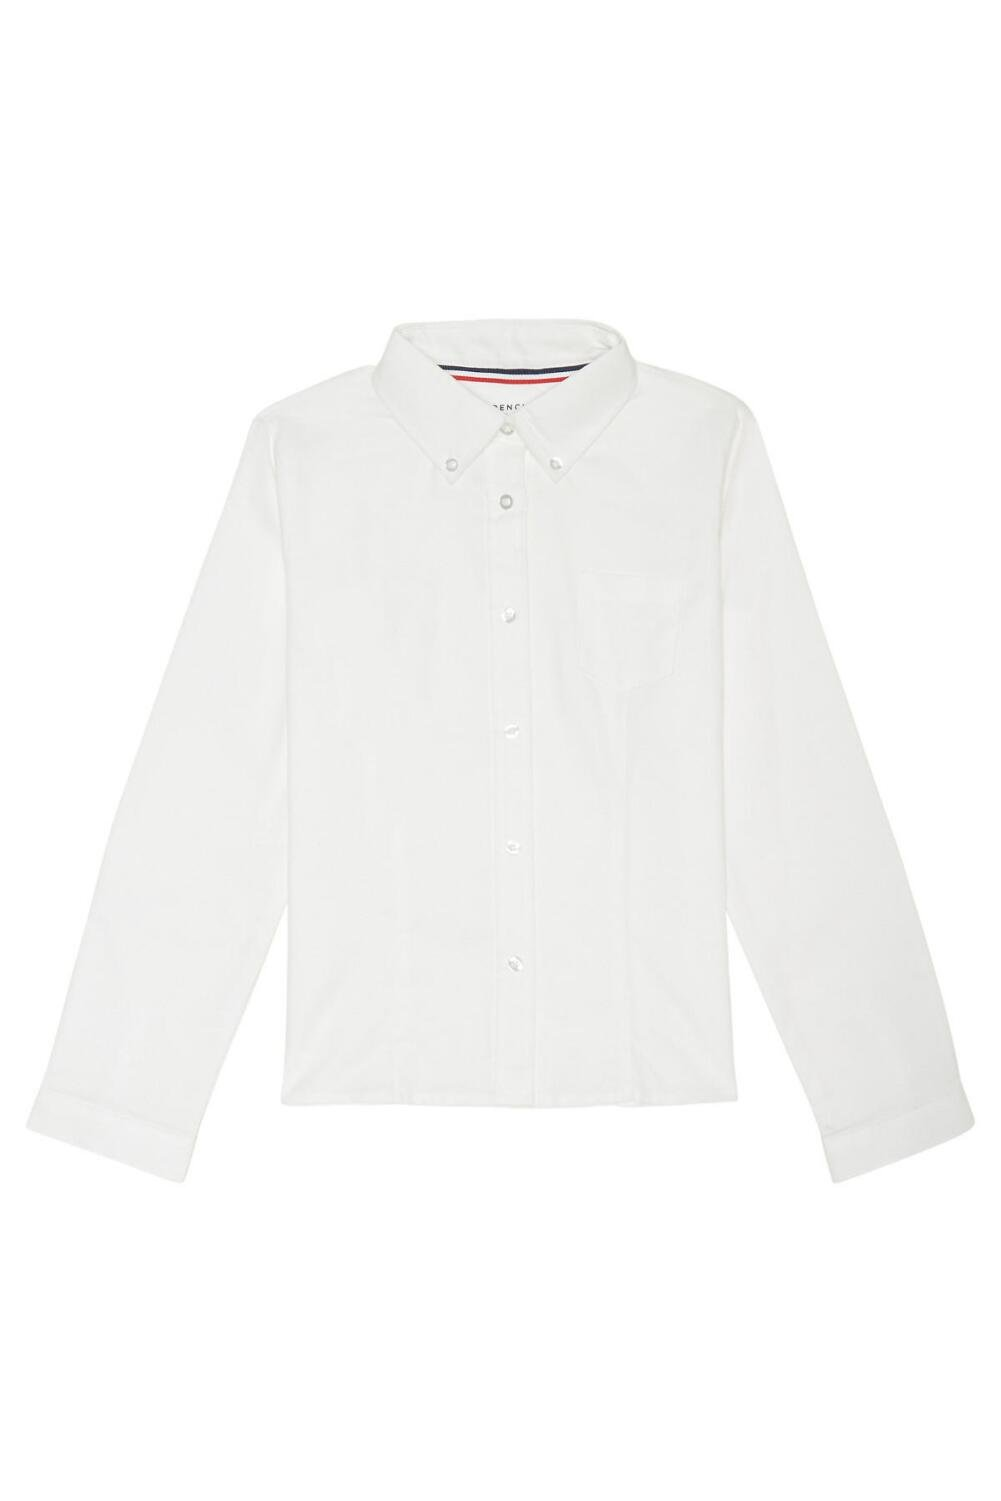 French Toast Big Girls' Long Sleeve Button Down Oxford, White, 12